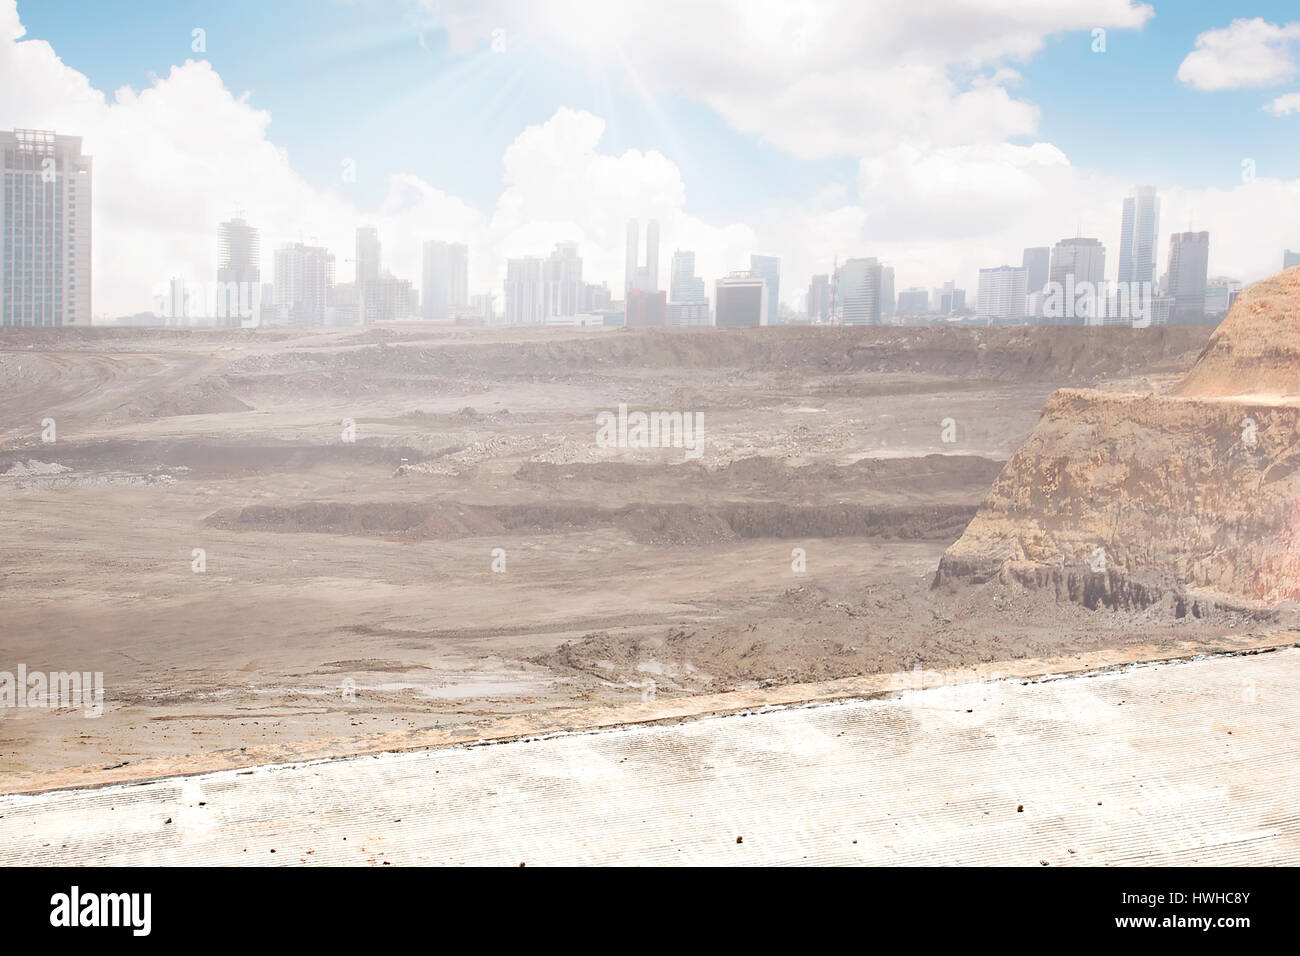 A destroyed city from far. You can use this for background for image or writing. Post apocalyptic concept. - Stock Image